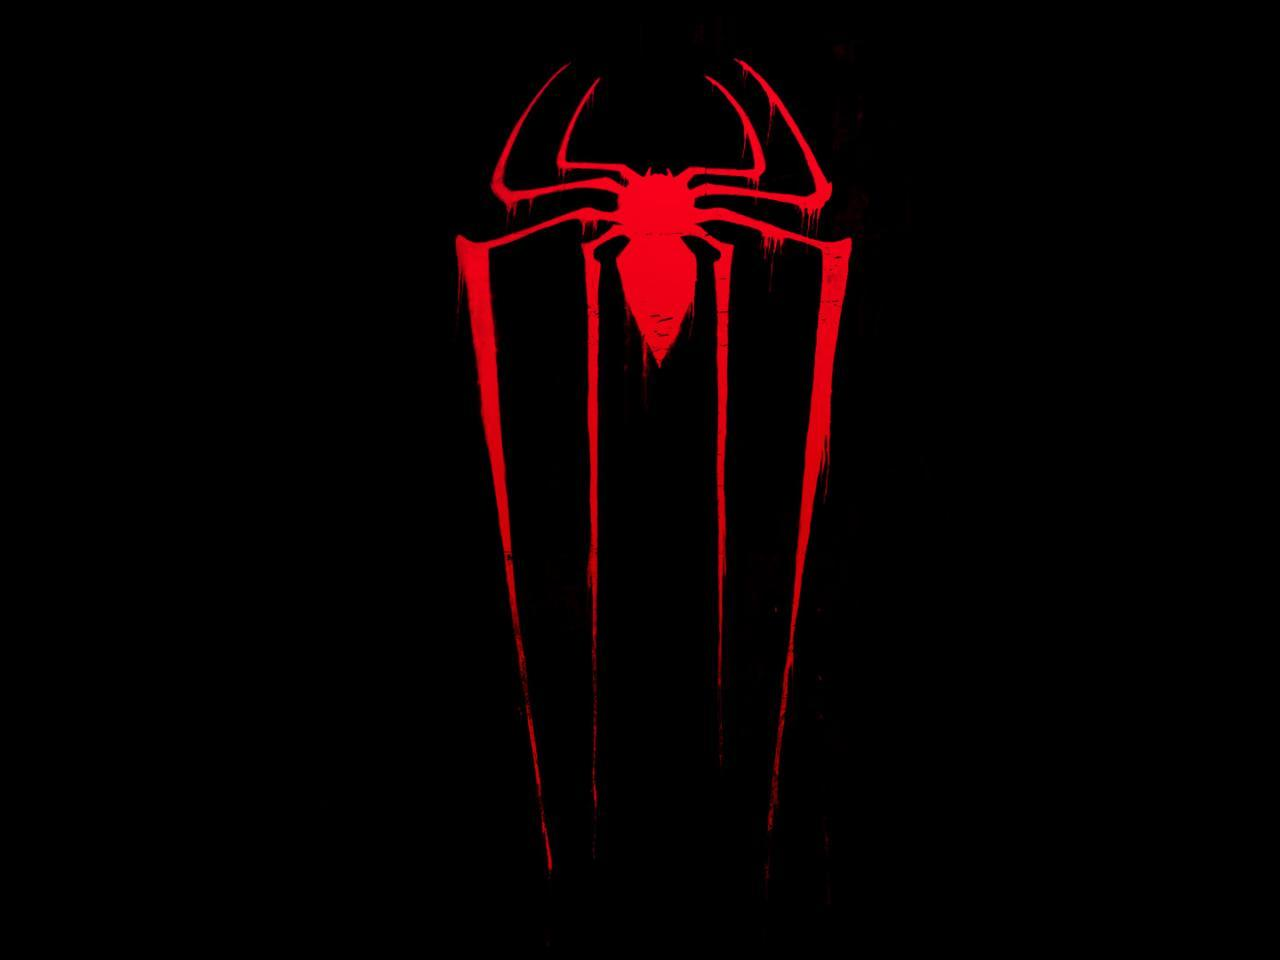 The amazing spider man logo - photo#37